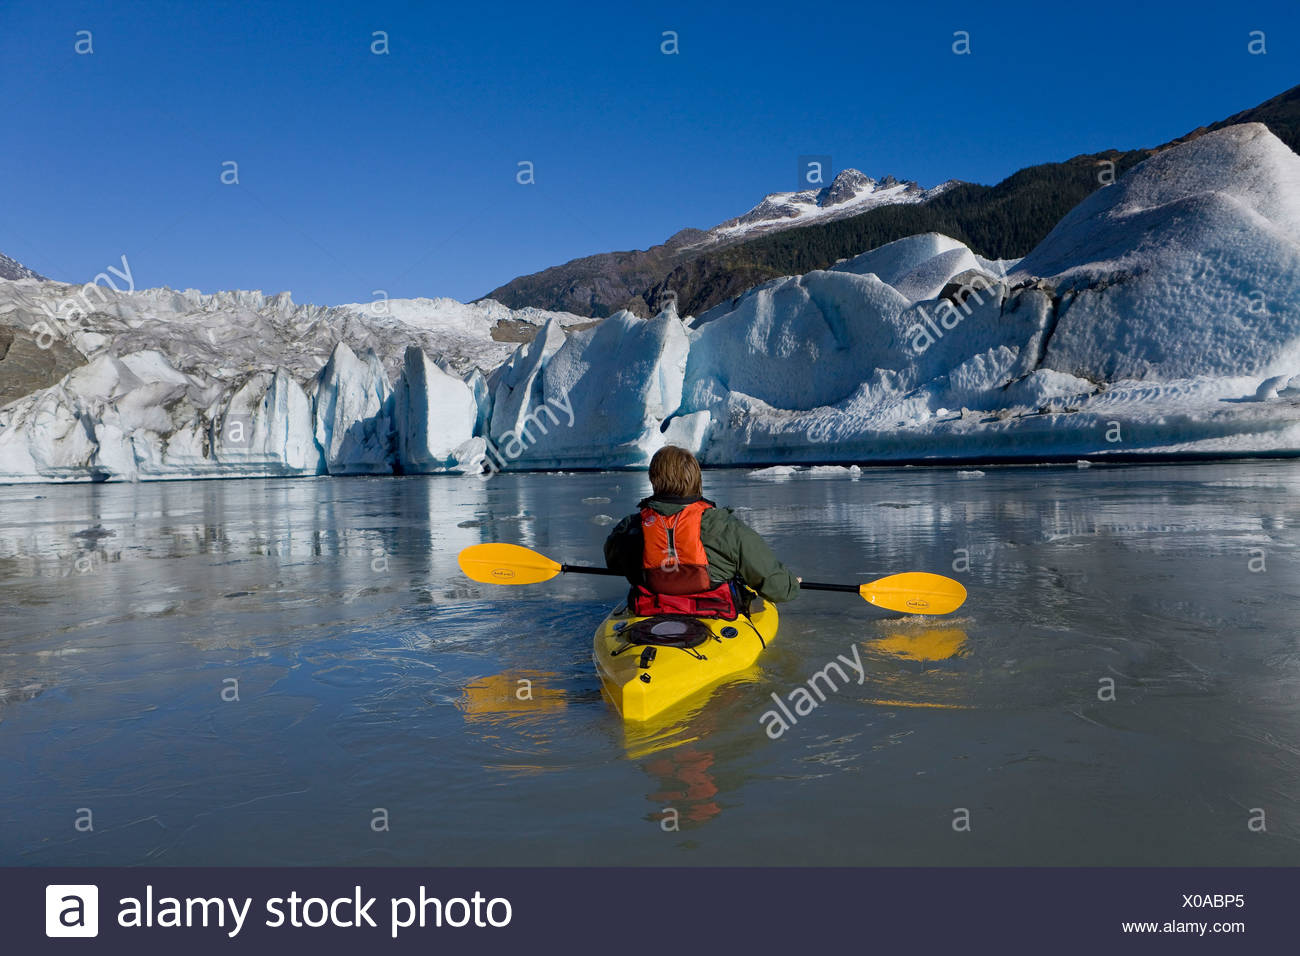 A kayaker paddles the icy waters of Mendenhall Lake with Mendenhall Glacier and Mt. Stroller White in the background, Alaska - Stock Image